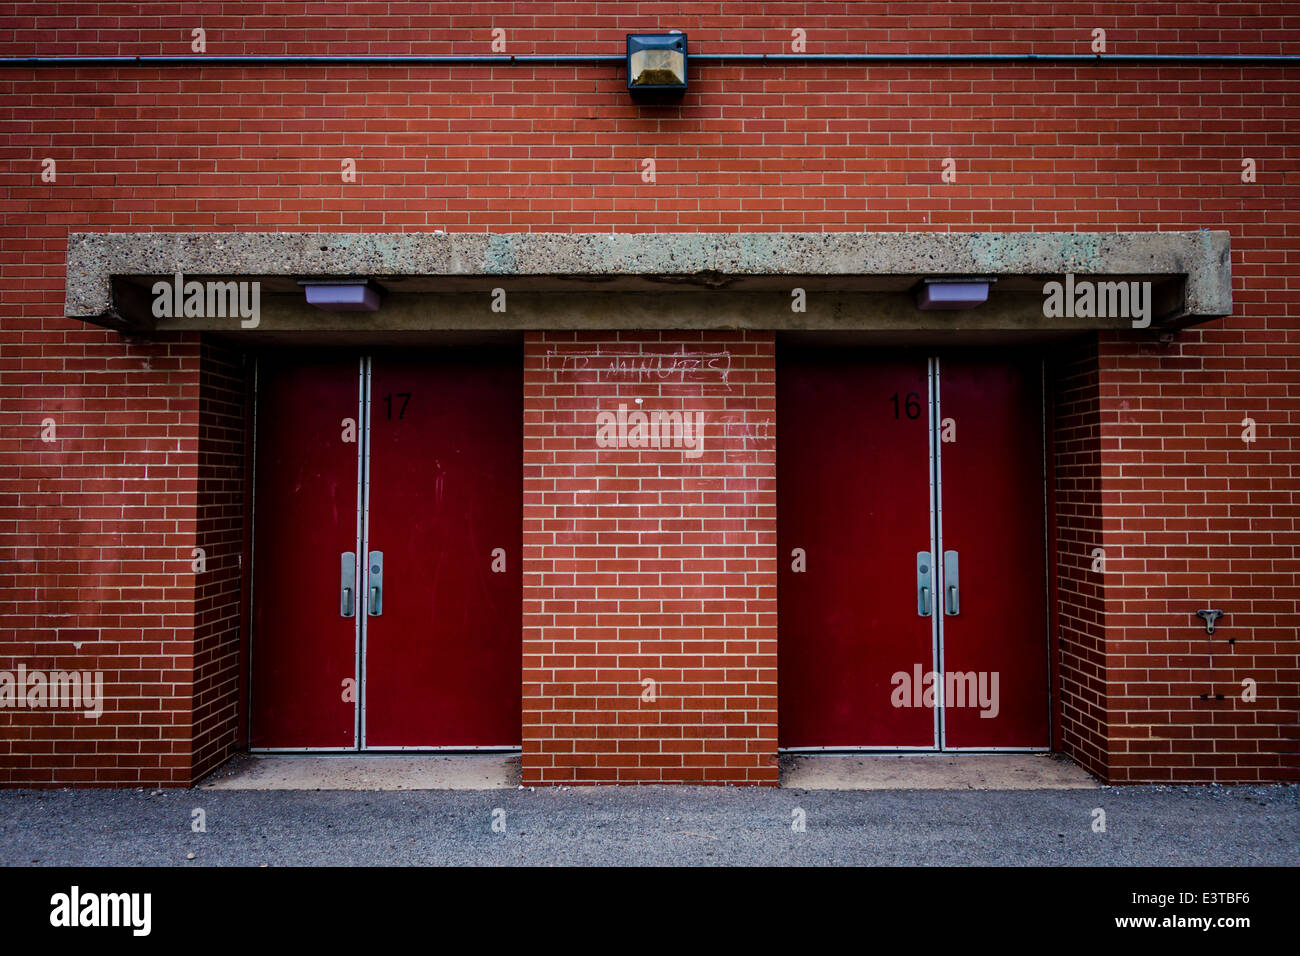 Two closed ed doorways on a red brick building. - Stock Image